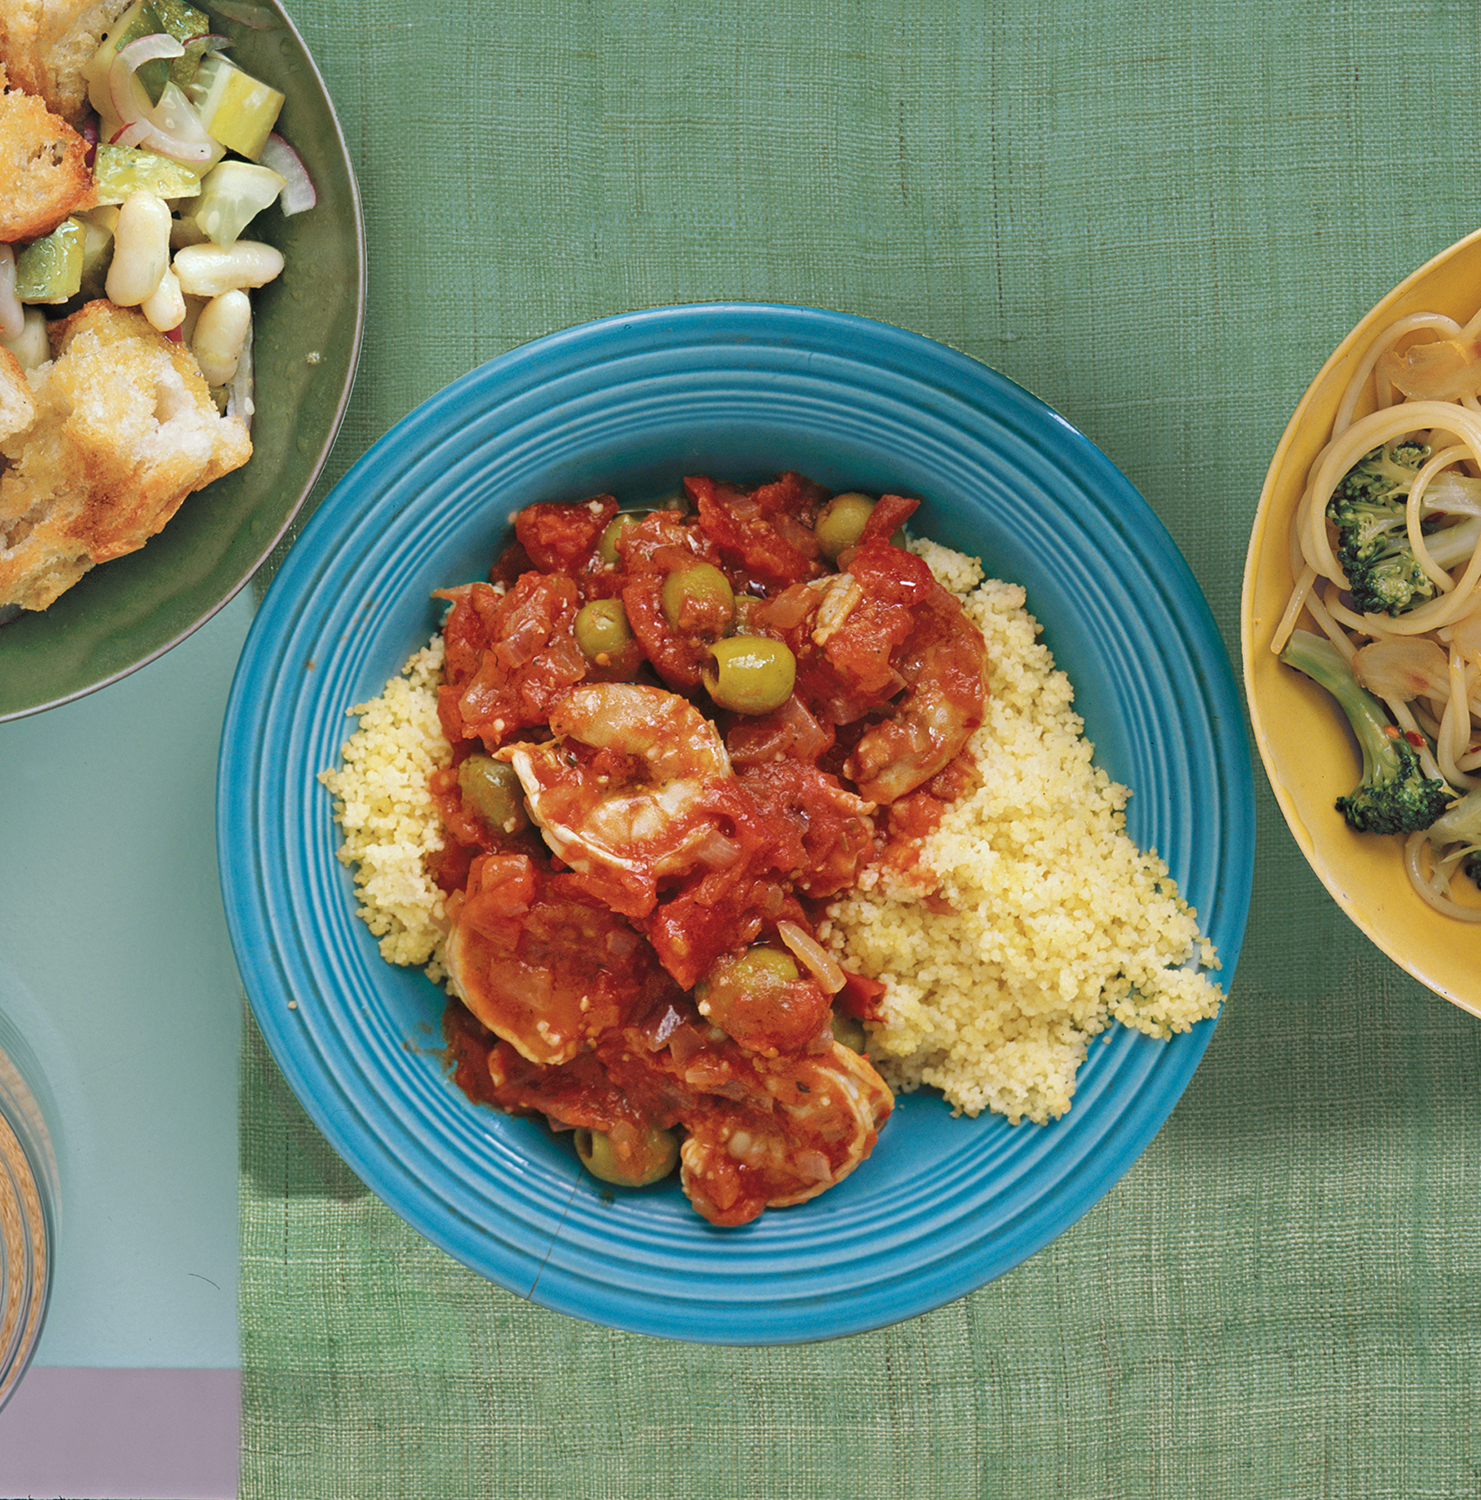 Cook Something Easy And Fast: 20 Fast Dinner Recipes